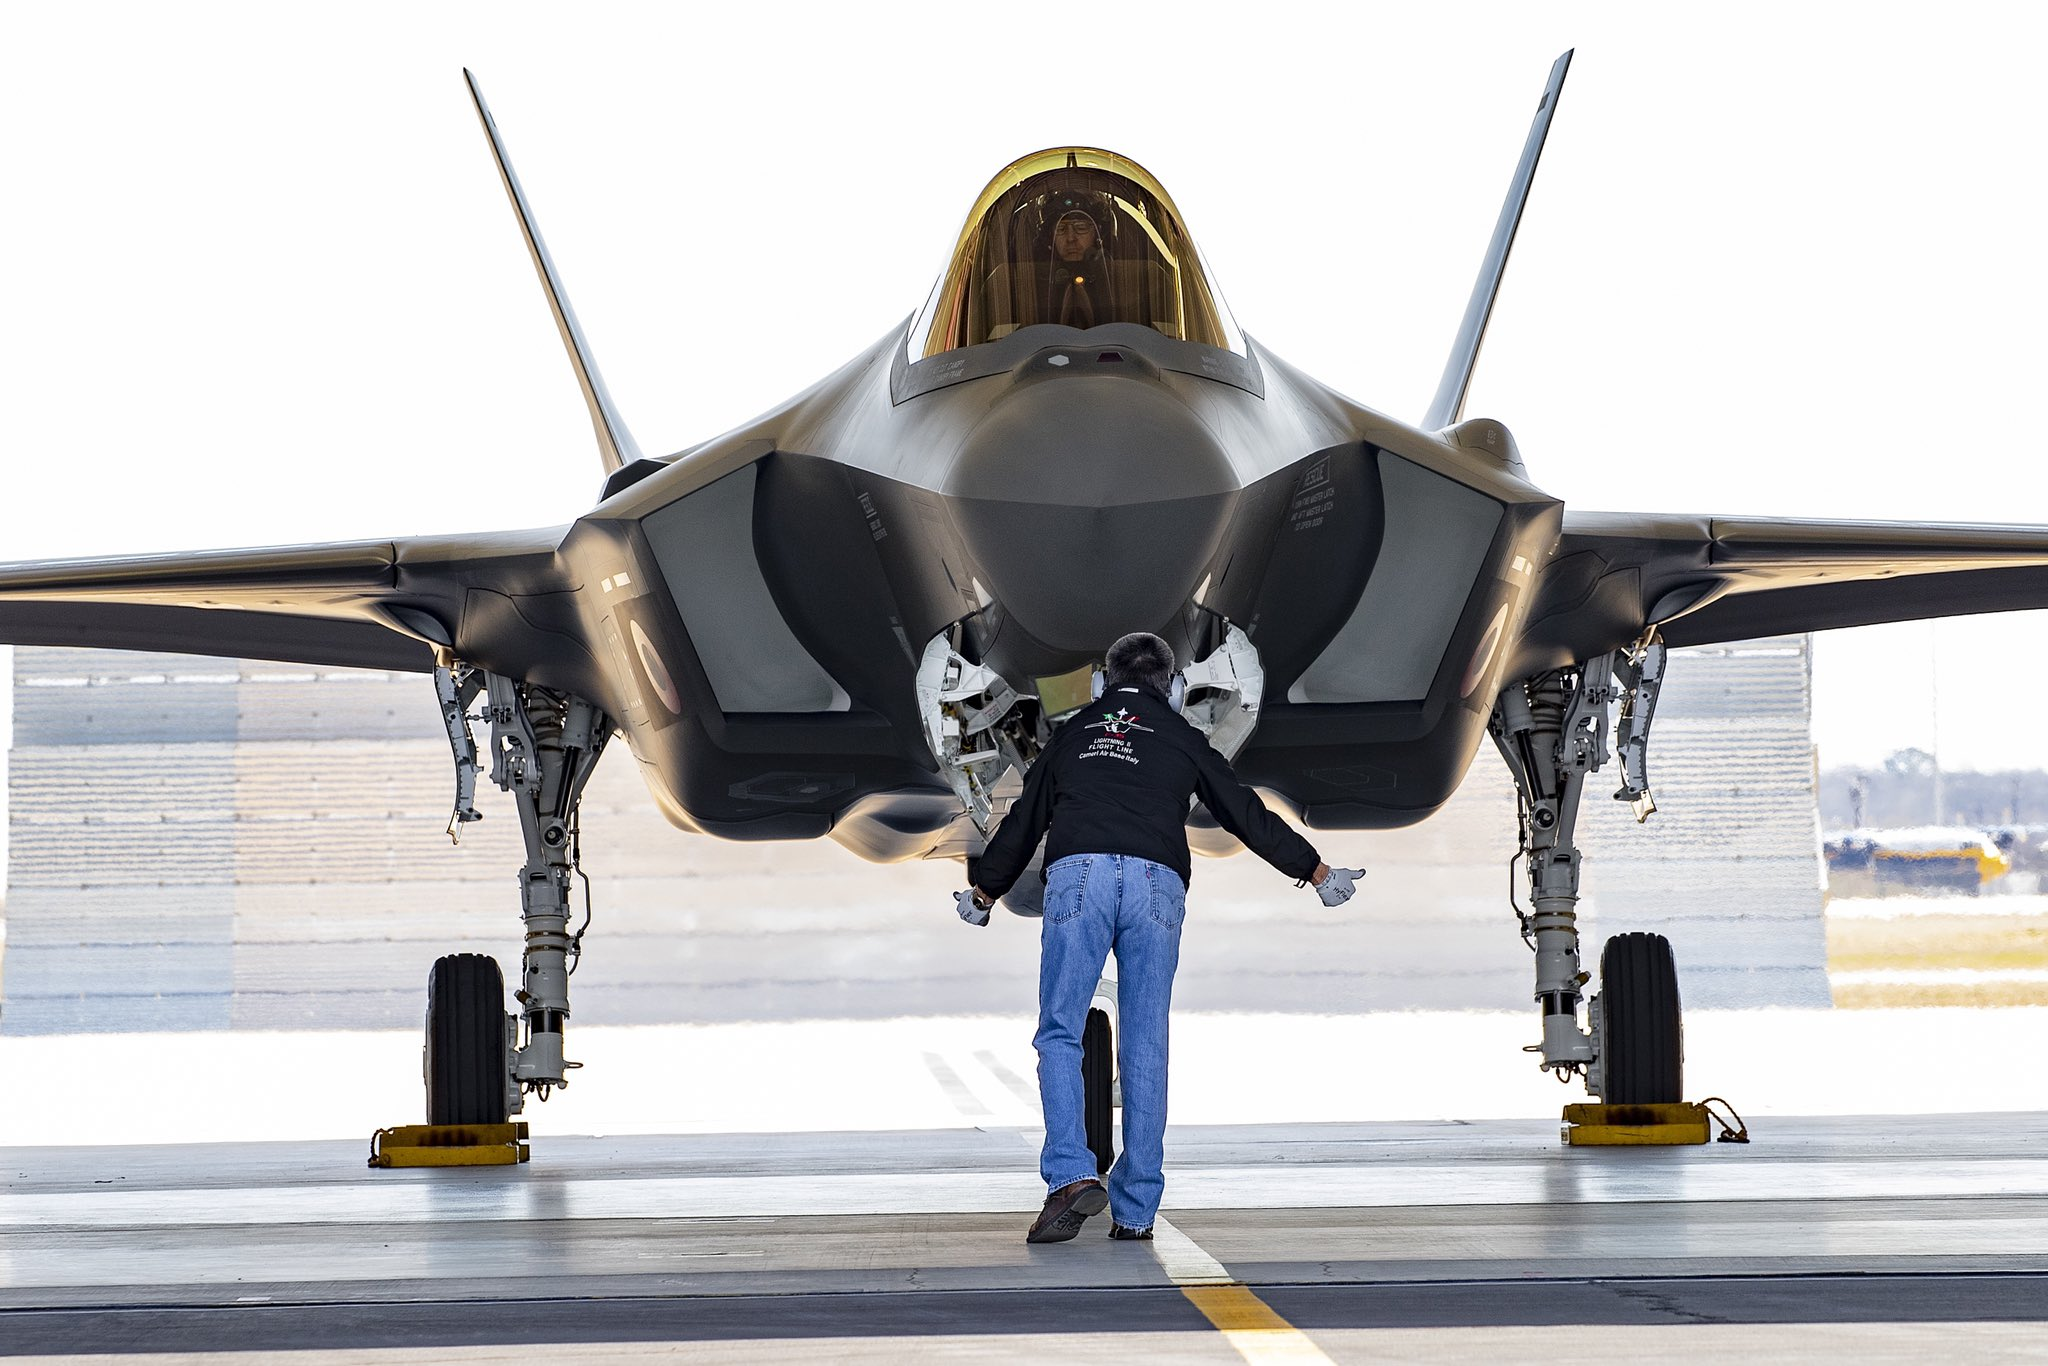 Royal Danish Air Force to Receive First F-35 Fighter Jet